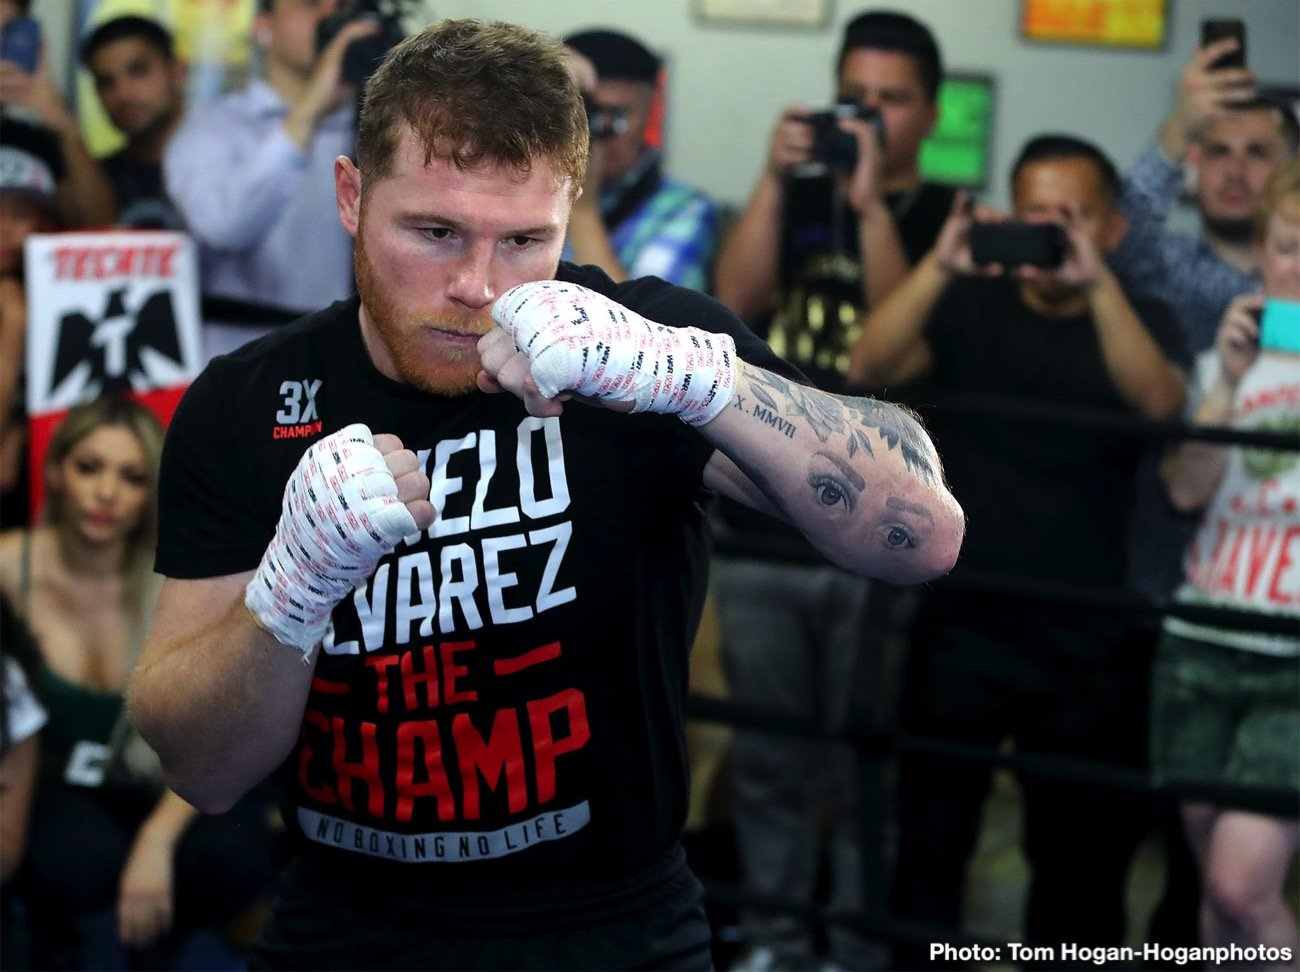 Canelo Alvarez, DAZN, Oscar De La Hoya - Oscar De La Hoya is frustrated with DAZN for them failing to approve any of the names that he's presented to them for Canelo Alvarez's next fight on September 12. Callum Smith is who Canelo could be facing next, but DAZN wants him to take less for this fight, says Steve Kim of ESPN.